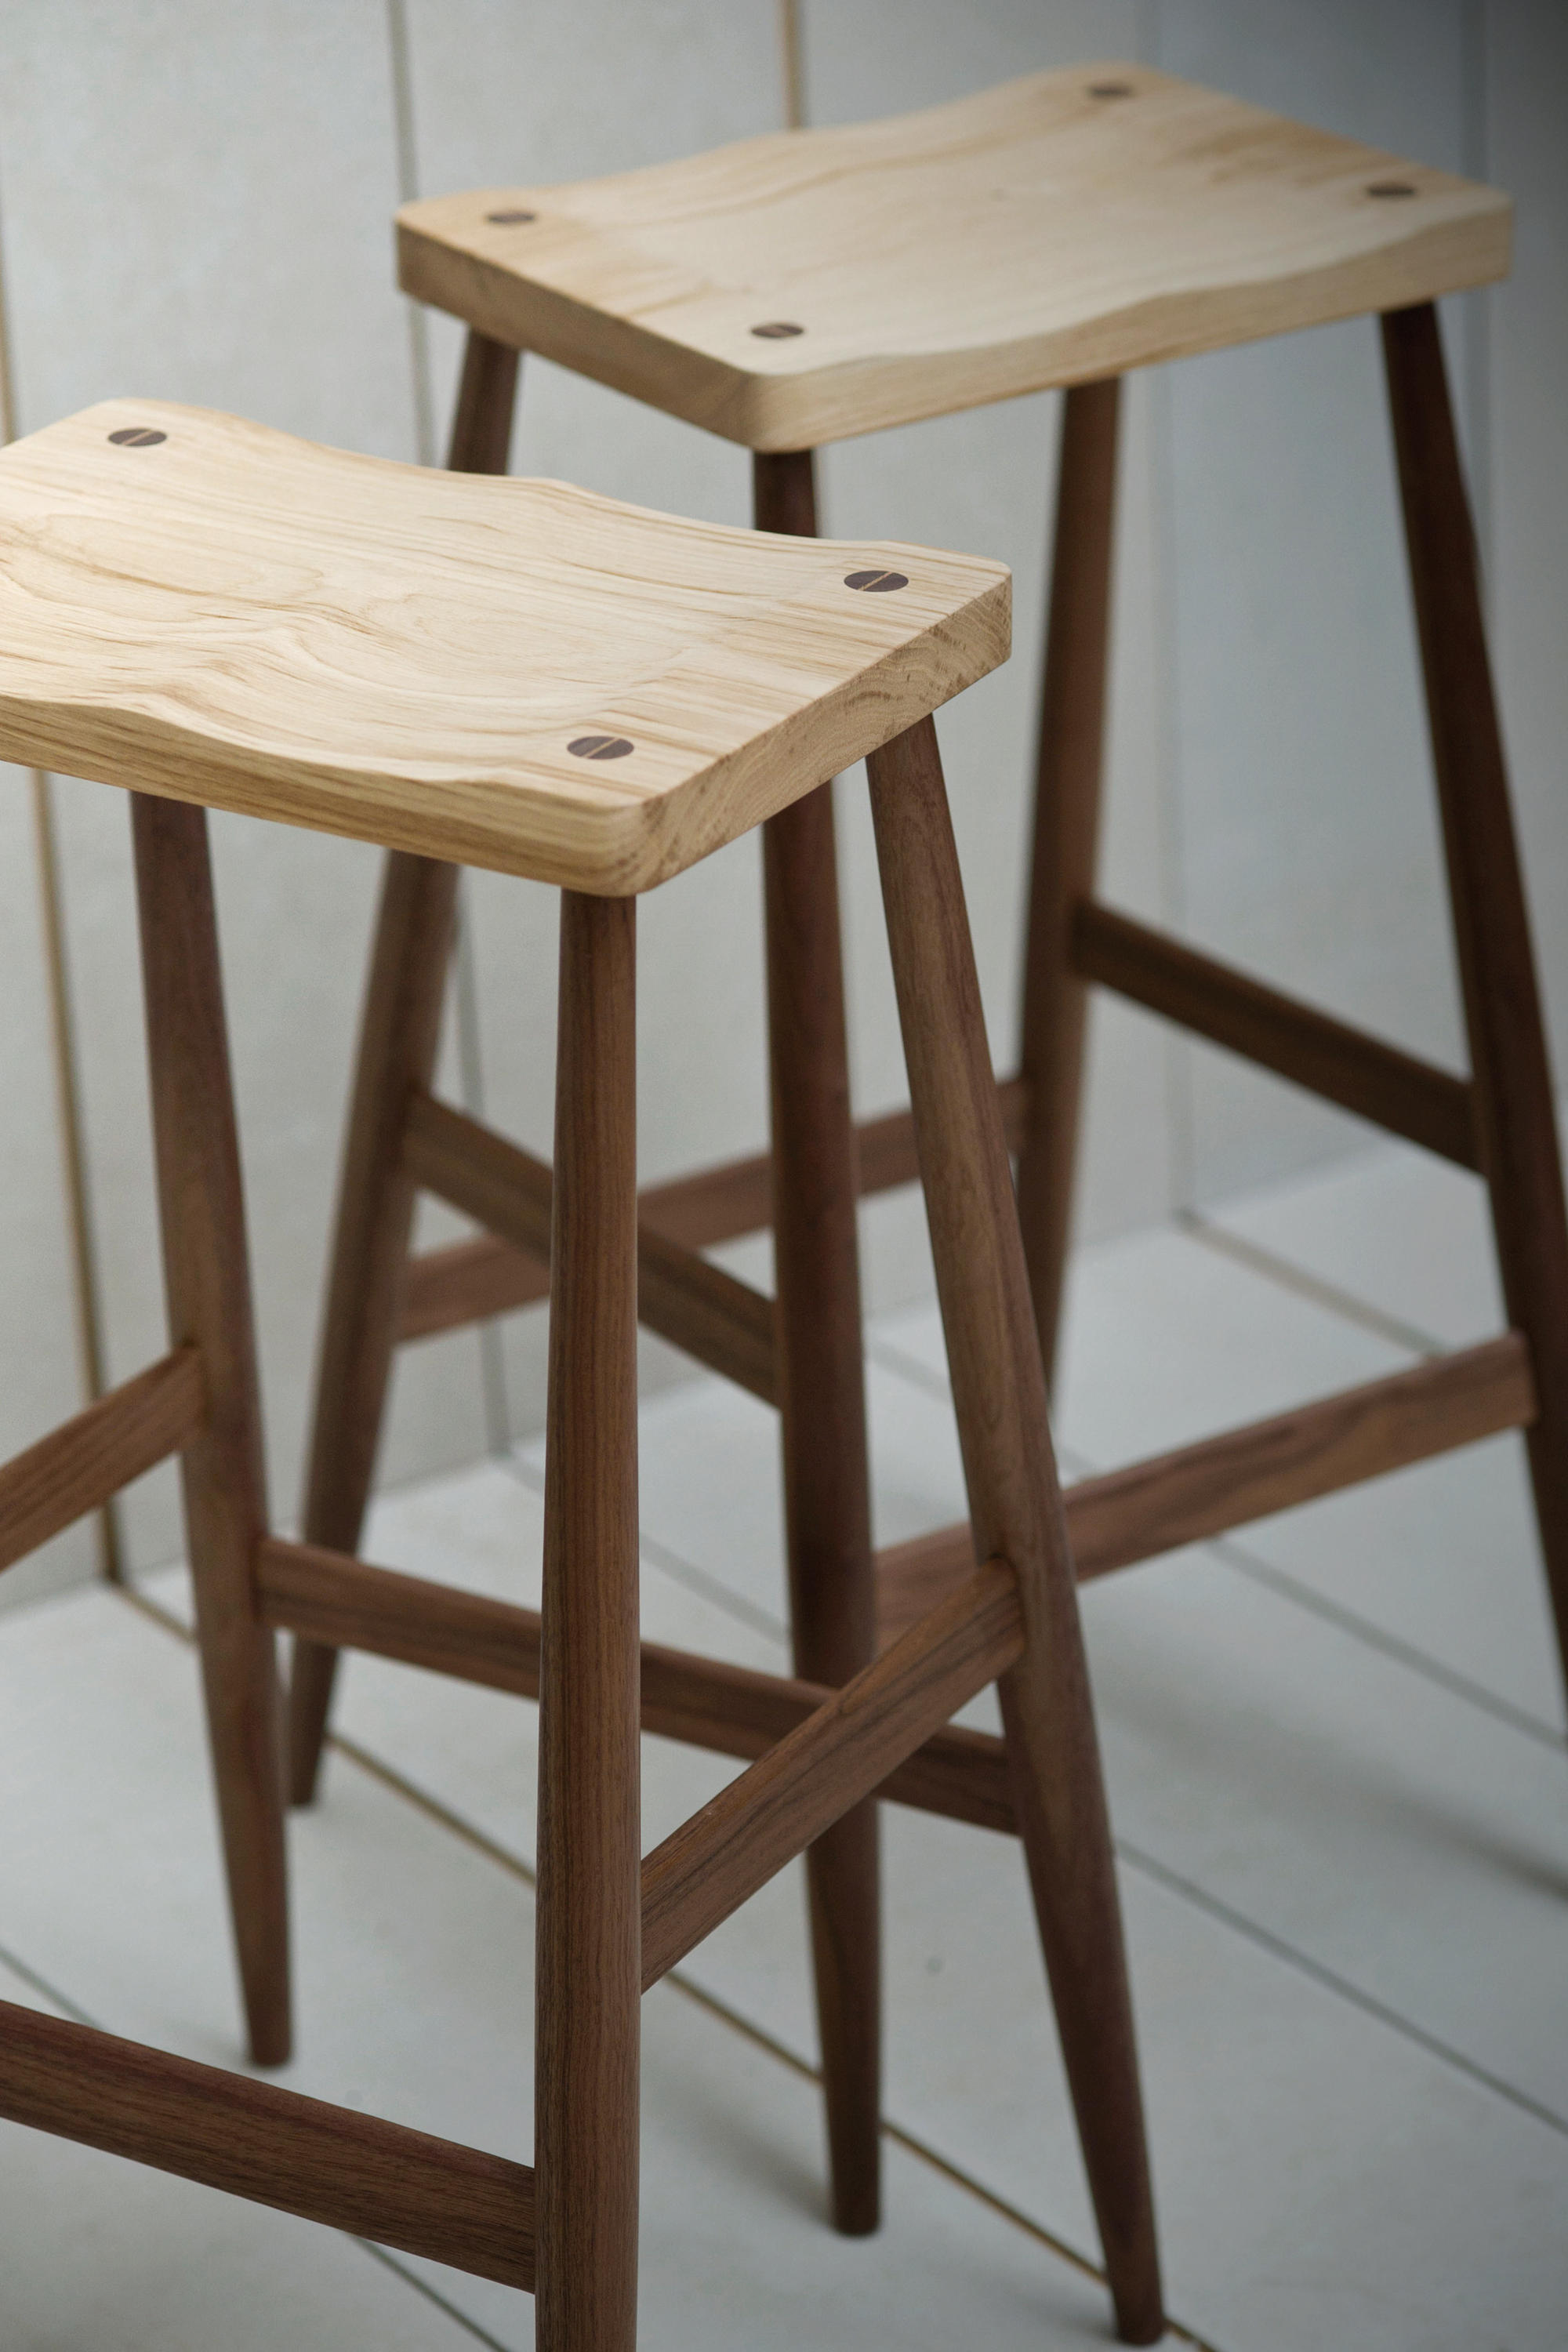 The Imo Fing Stool By Pinch Imo Fing Stool By Pinch Imo Fing Stool Stools From Pinch Architonic Fing Bar Stools Outdoor Fing Bar Stools houzz 01 Folding Bar Stools